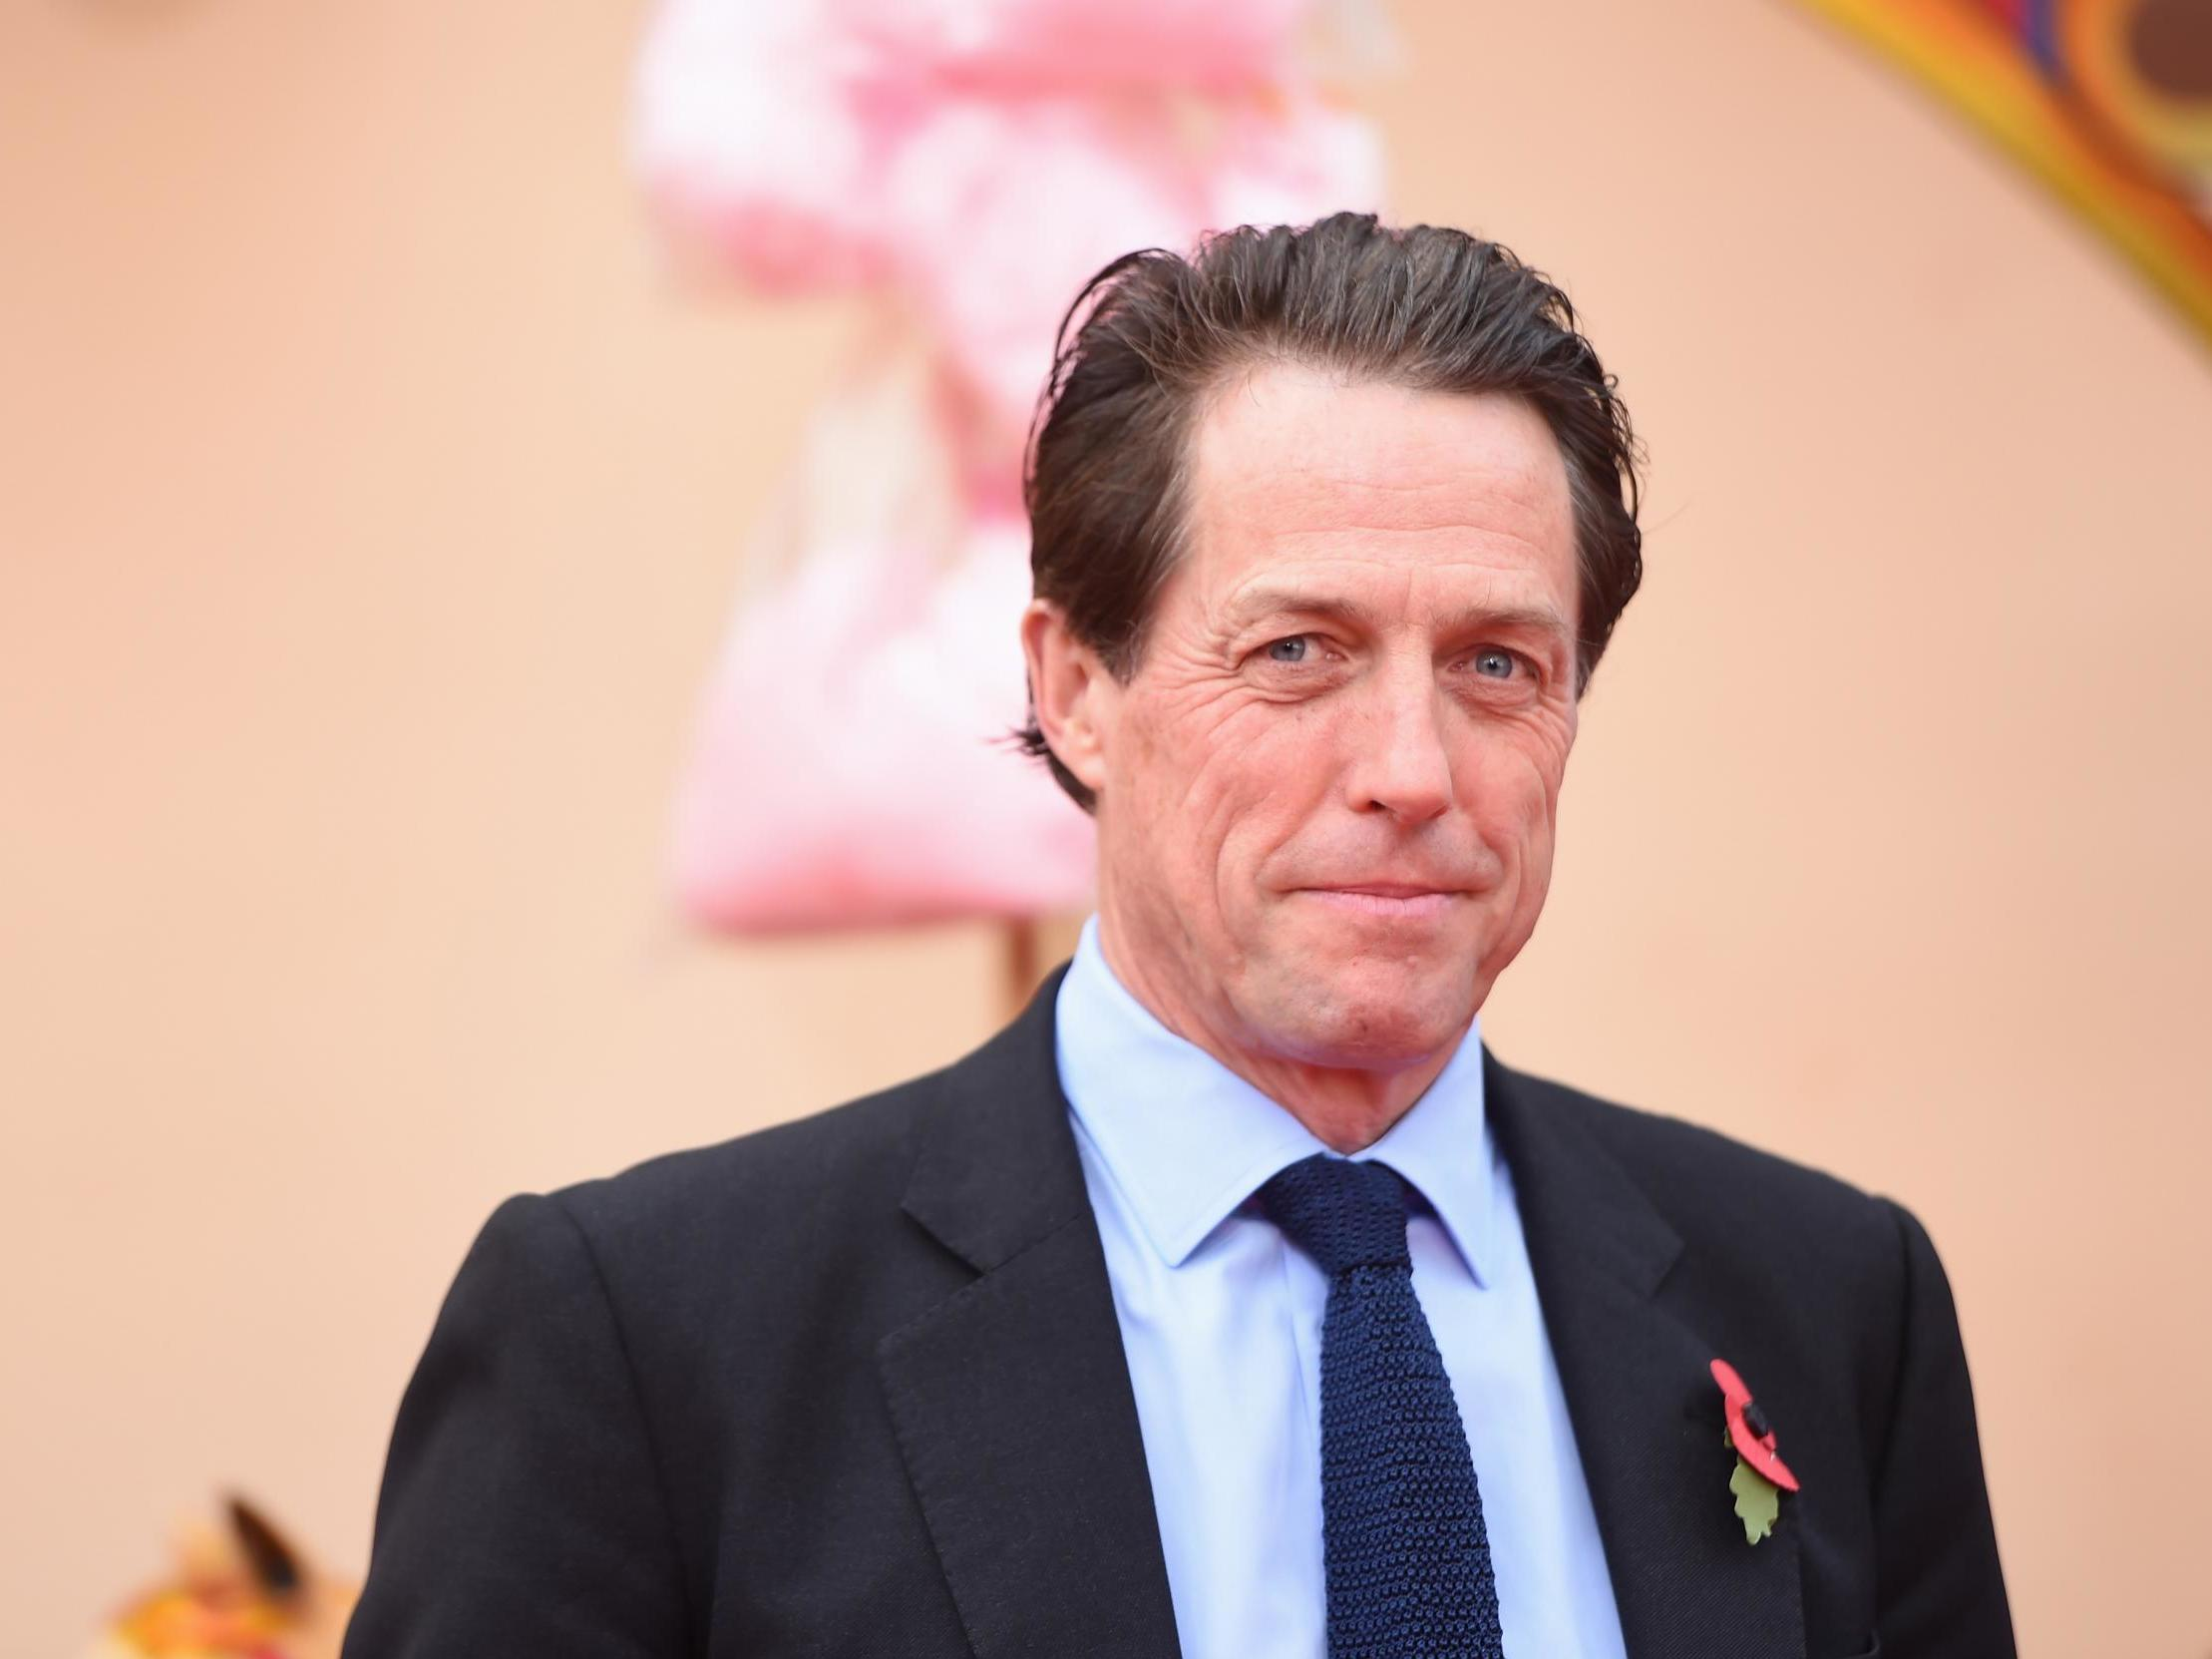 Hugh Grant says the UK is 'finished' ahead of Brexit: 'It's a catastrophe'